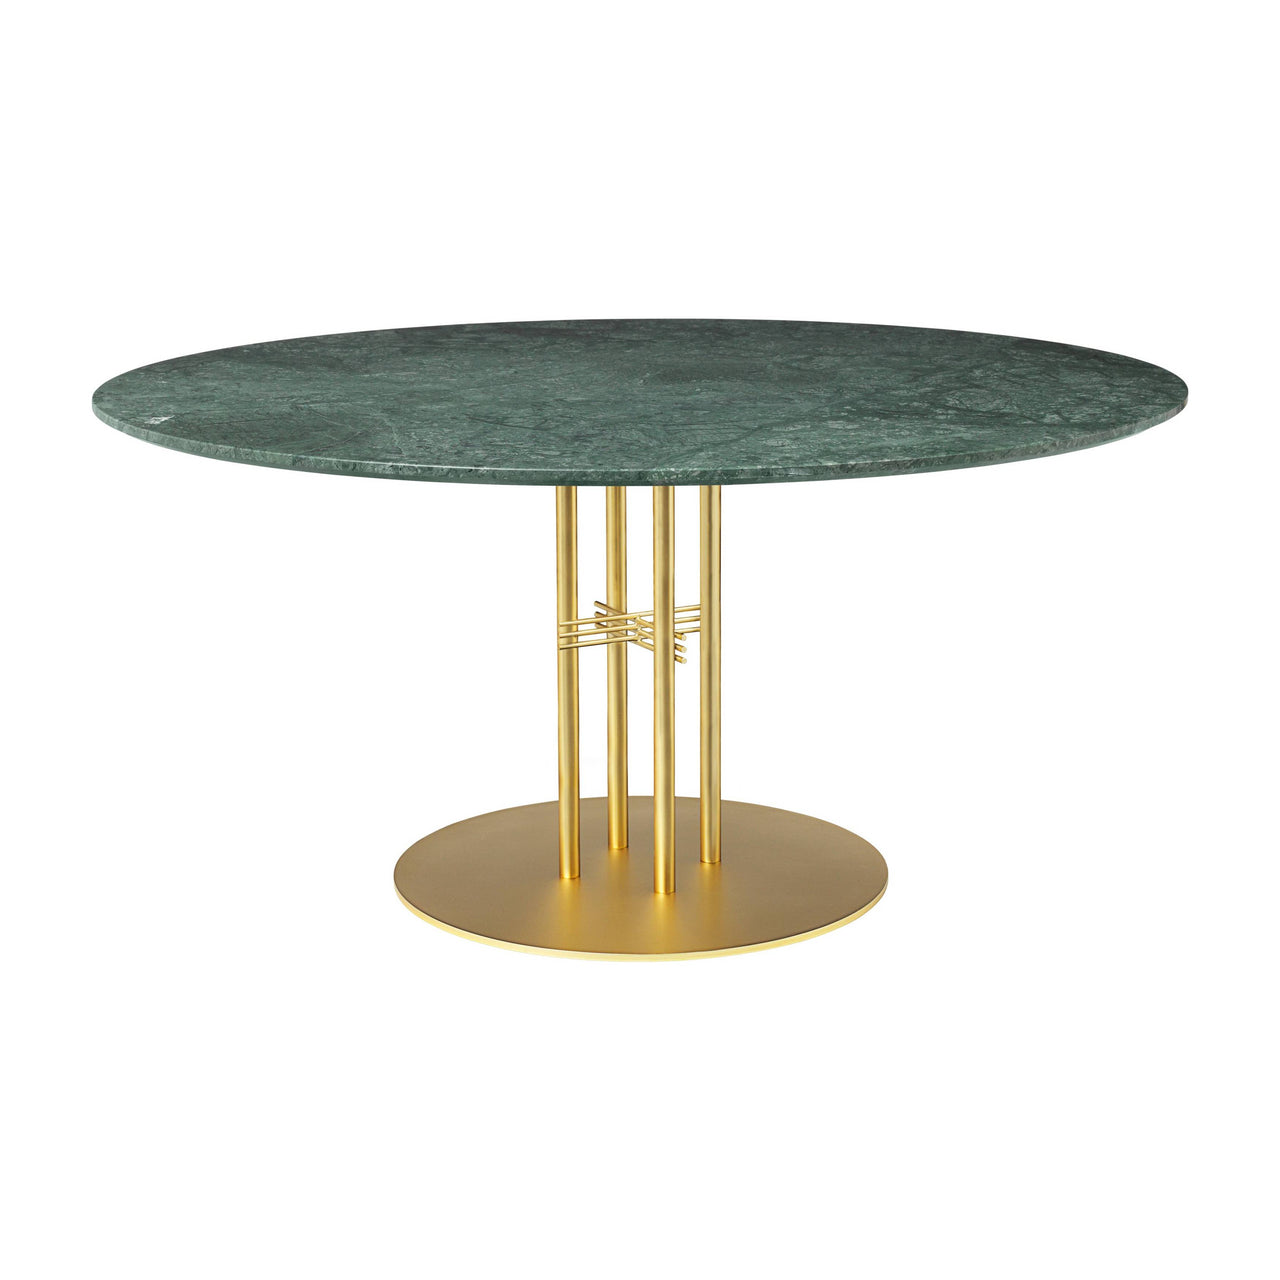 TS Column Dining Table: Extra Large + Brass Base + Green Gautemala Marble